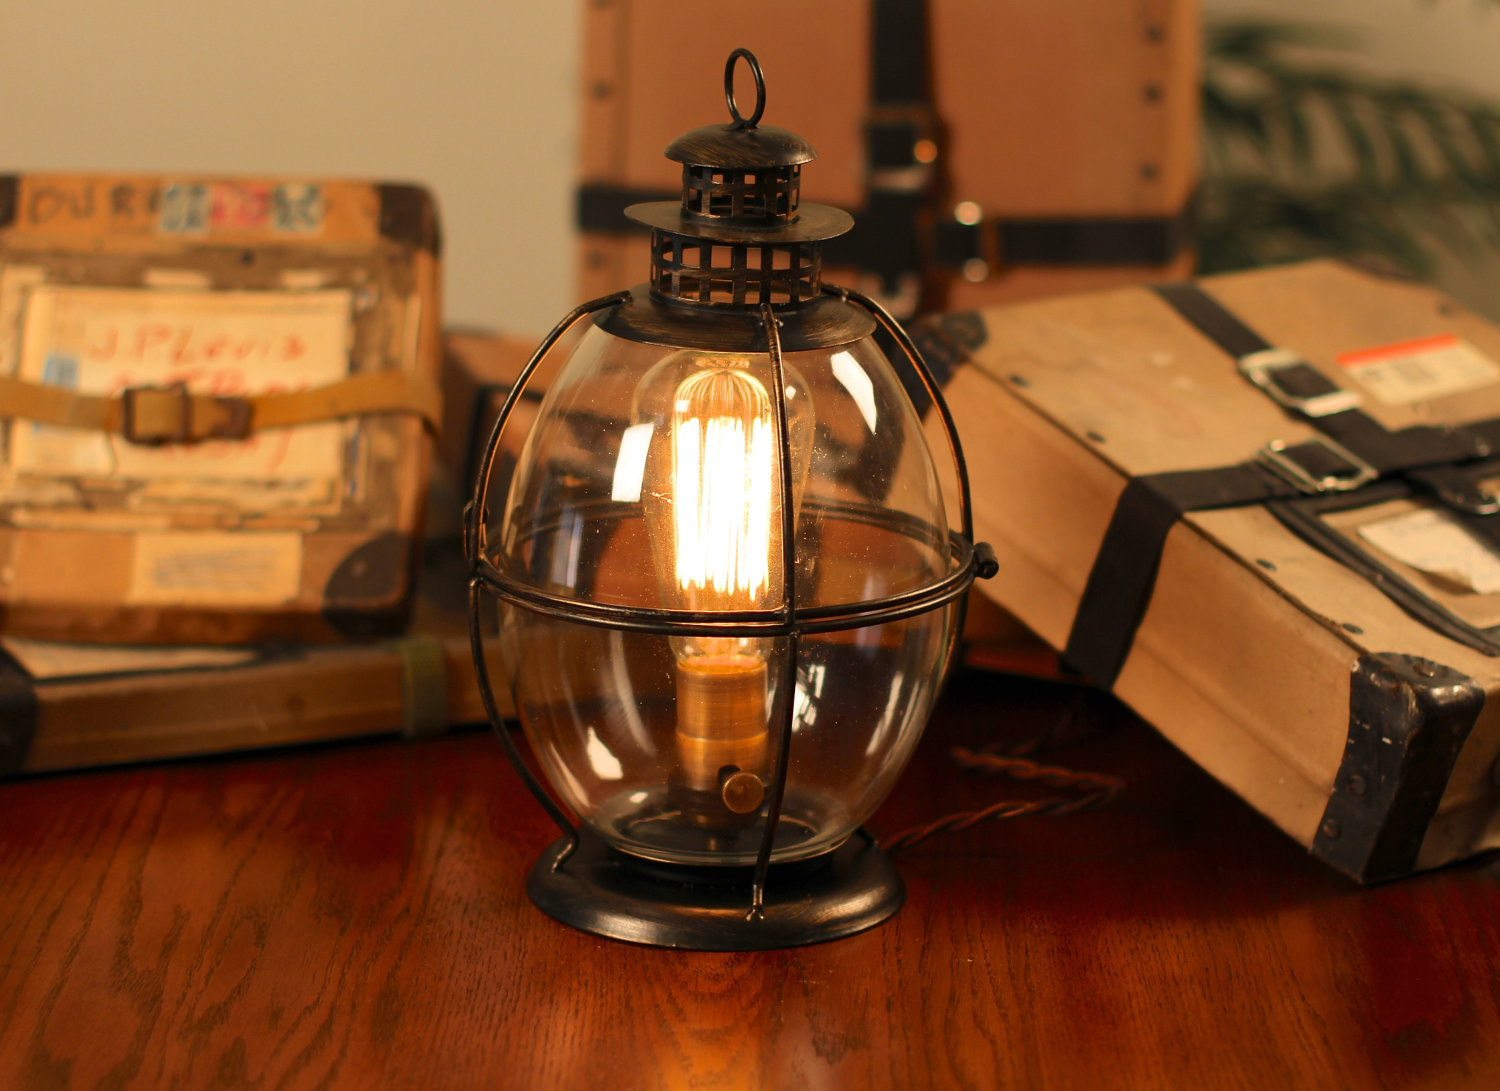 Best ideas about Rustic Desk Lamp . Save or Pin Illuminate Your rooms With the antique Shades From Rustic Now.